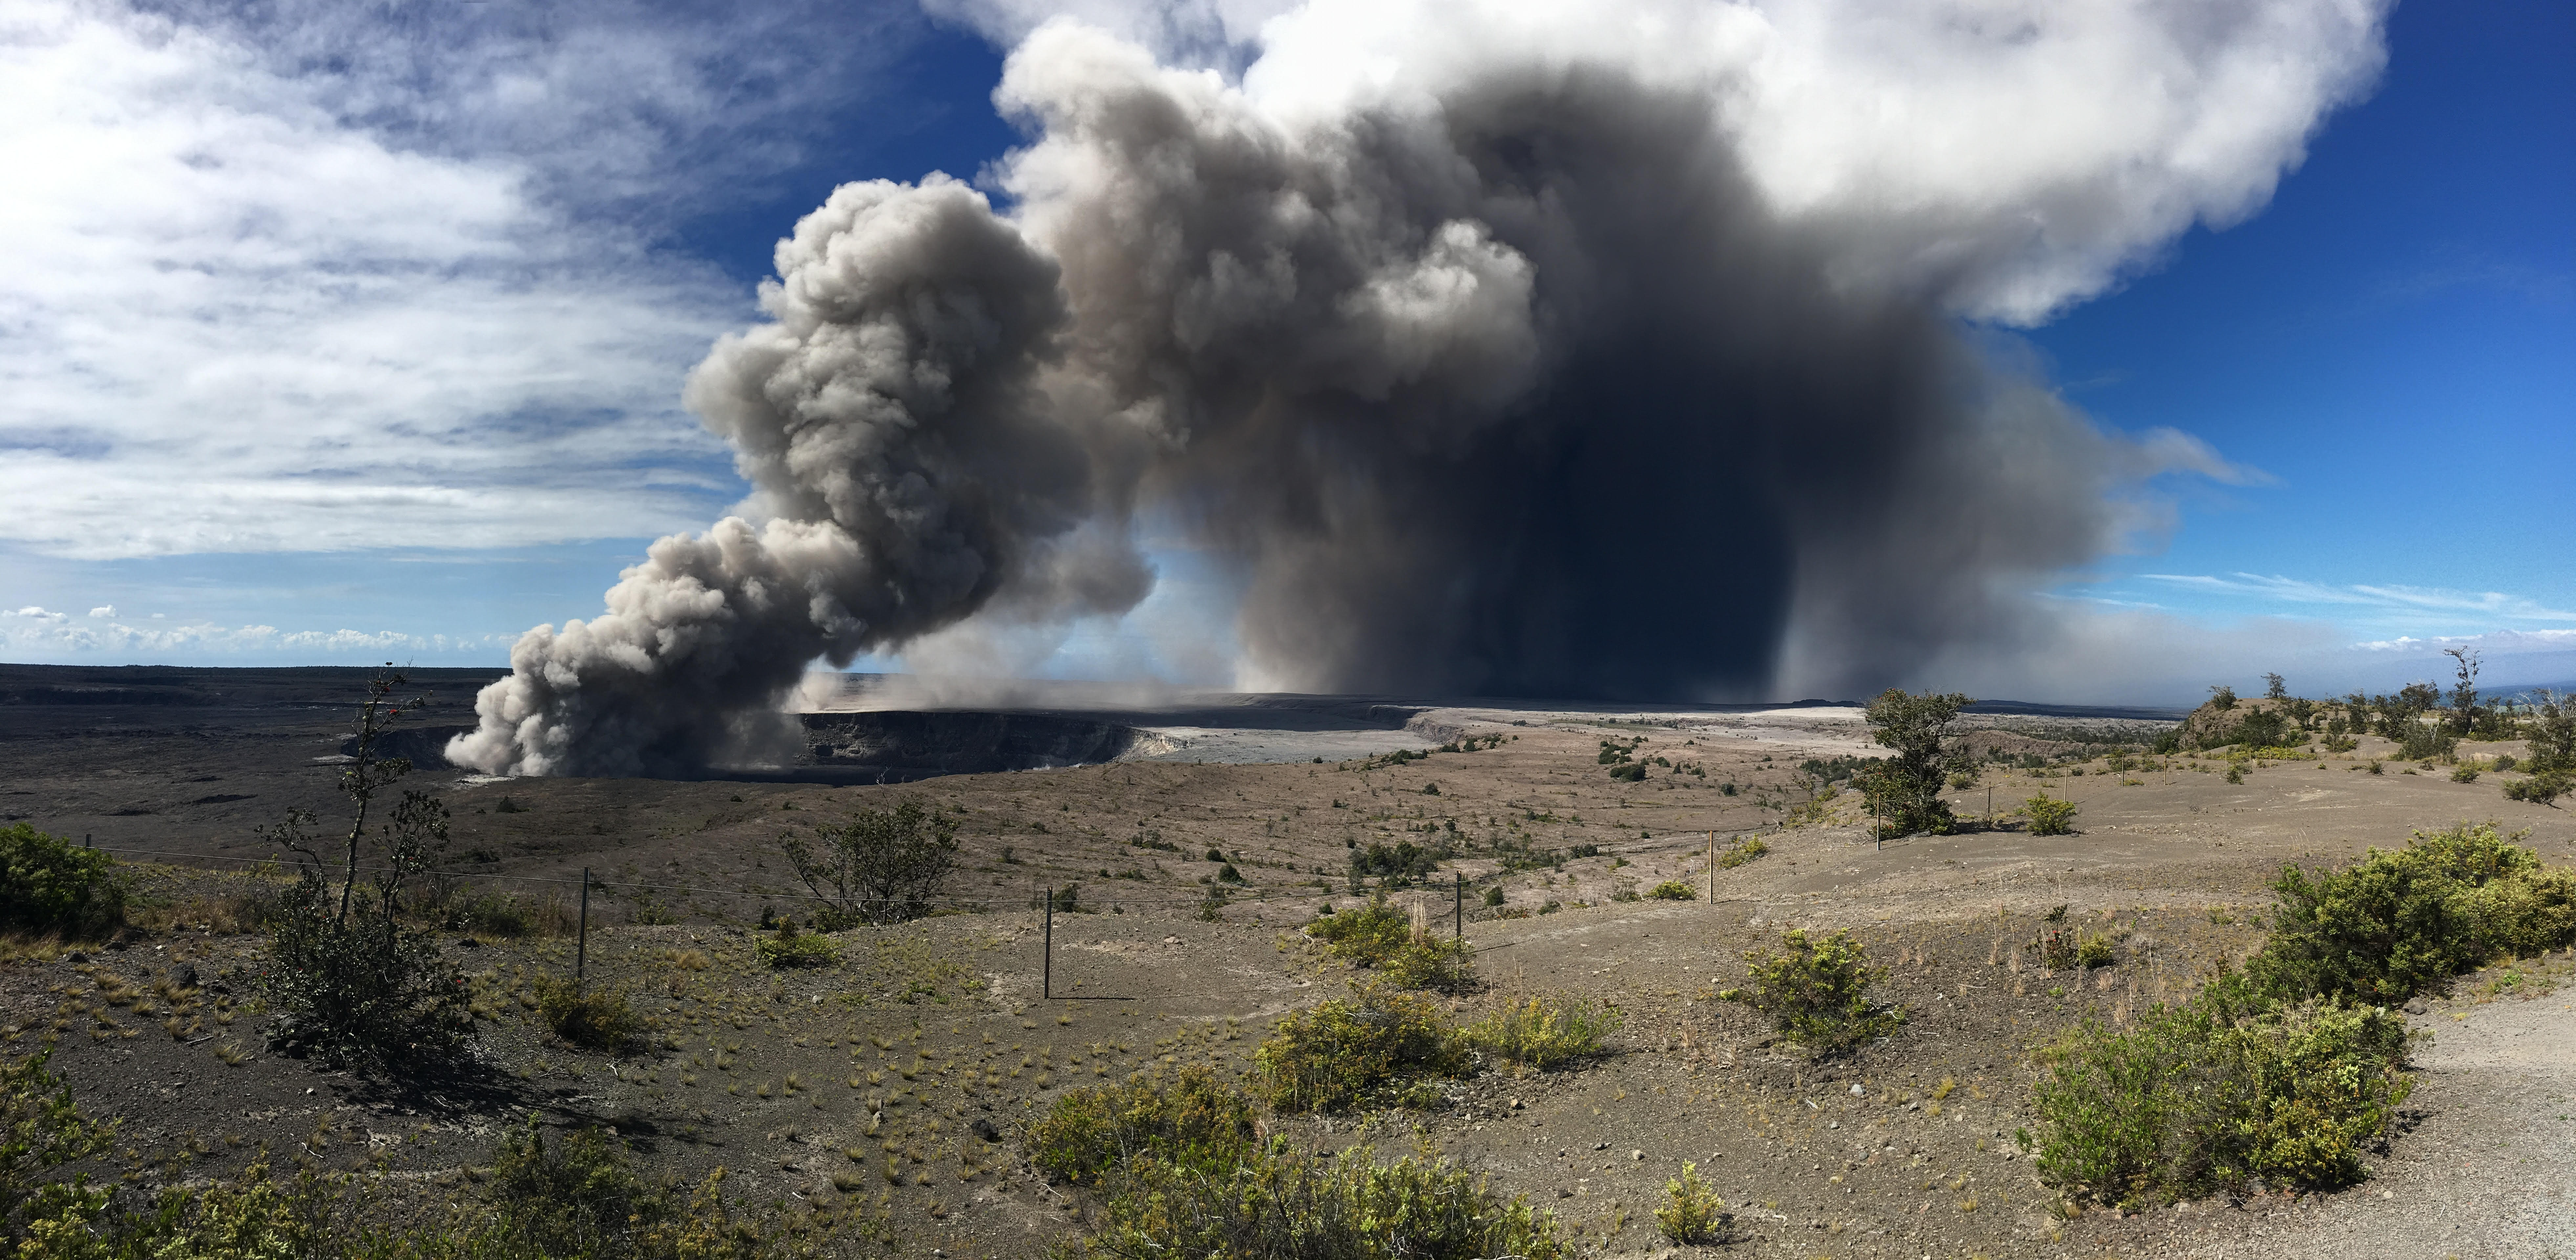 NWS issues first ash advisory ever for Hawaii after ash plumes rise from the Kilauea volcano. Hawaii, May 15, 2018.